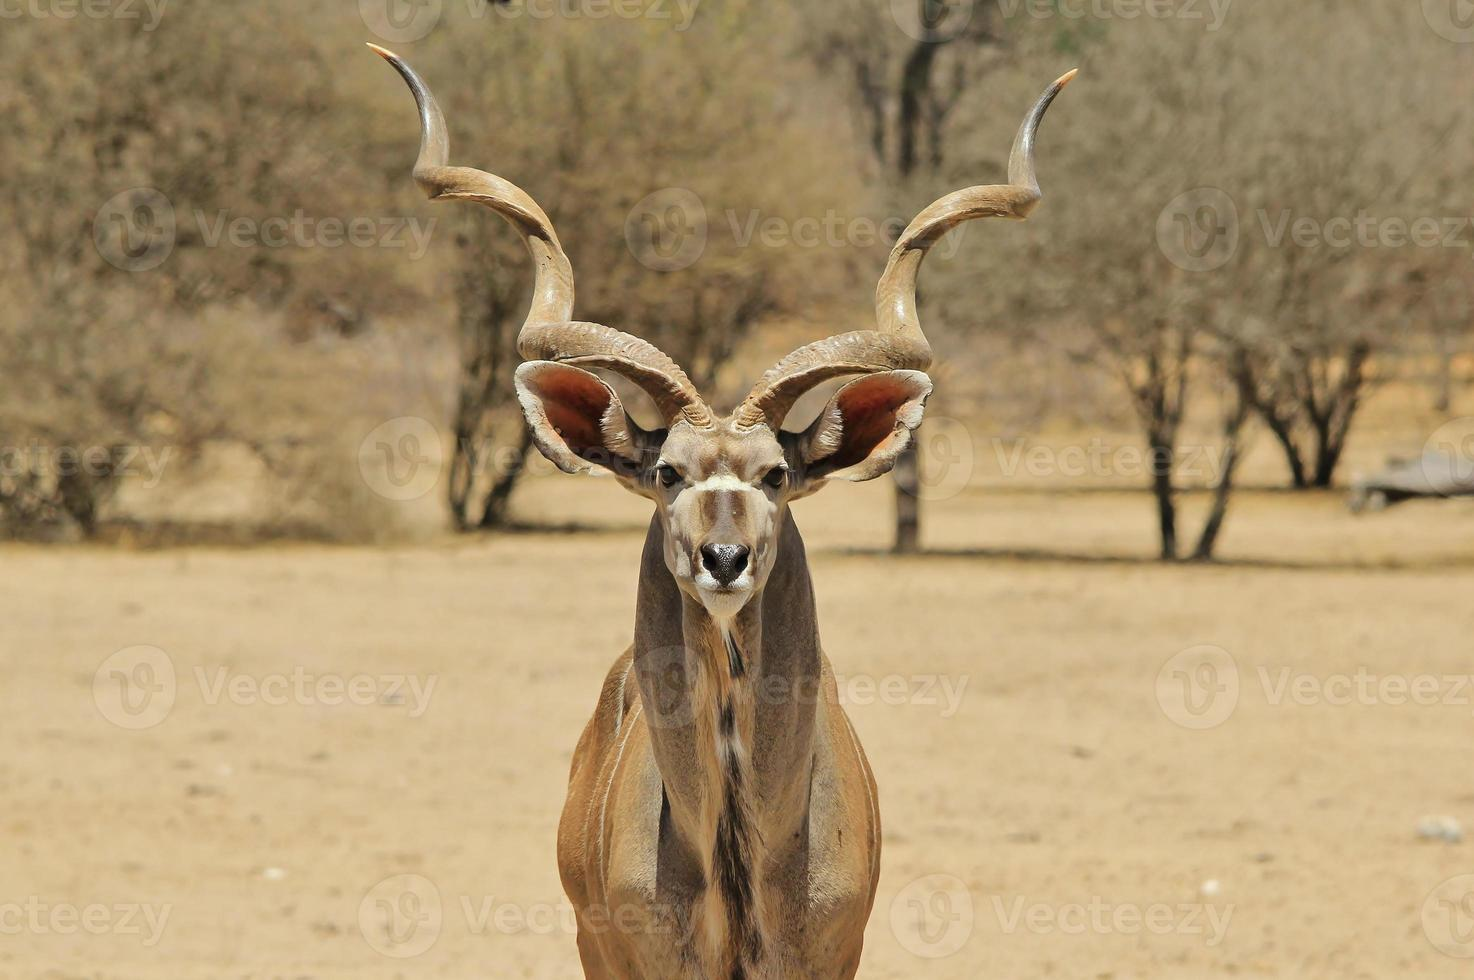 Kudu Bull Pride - Wildlife Background from Africa photo